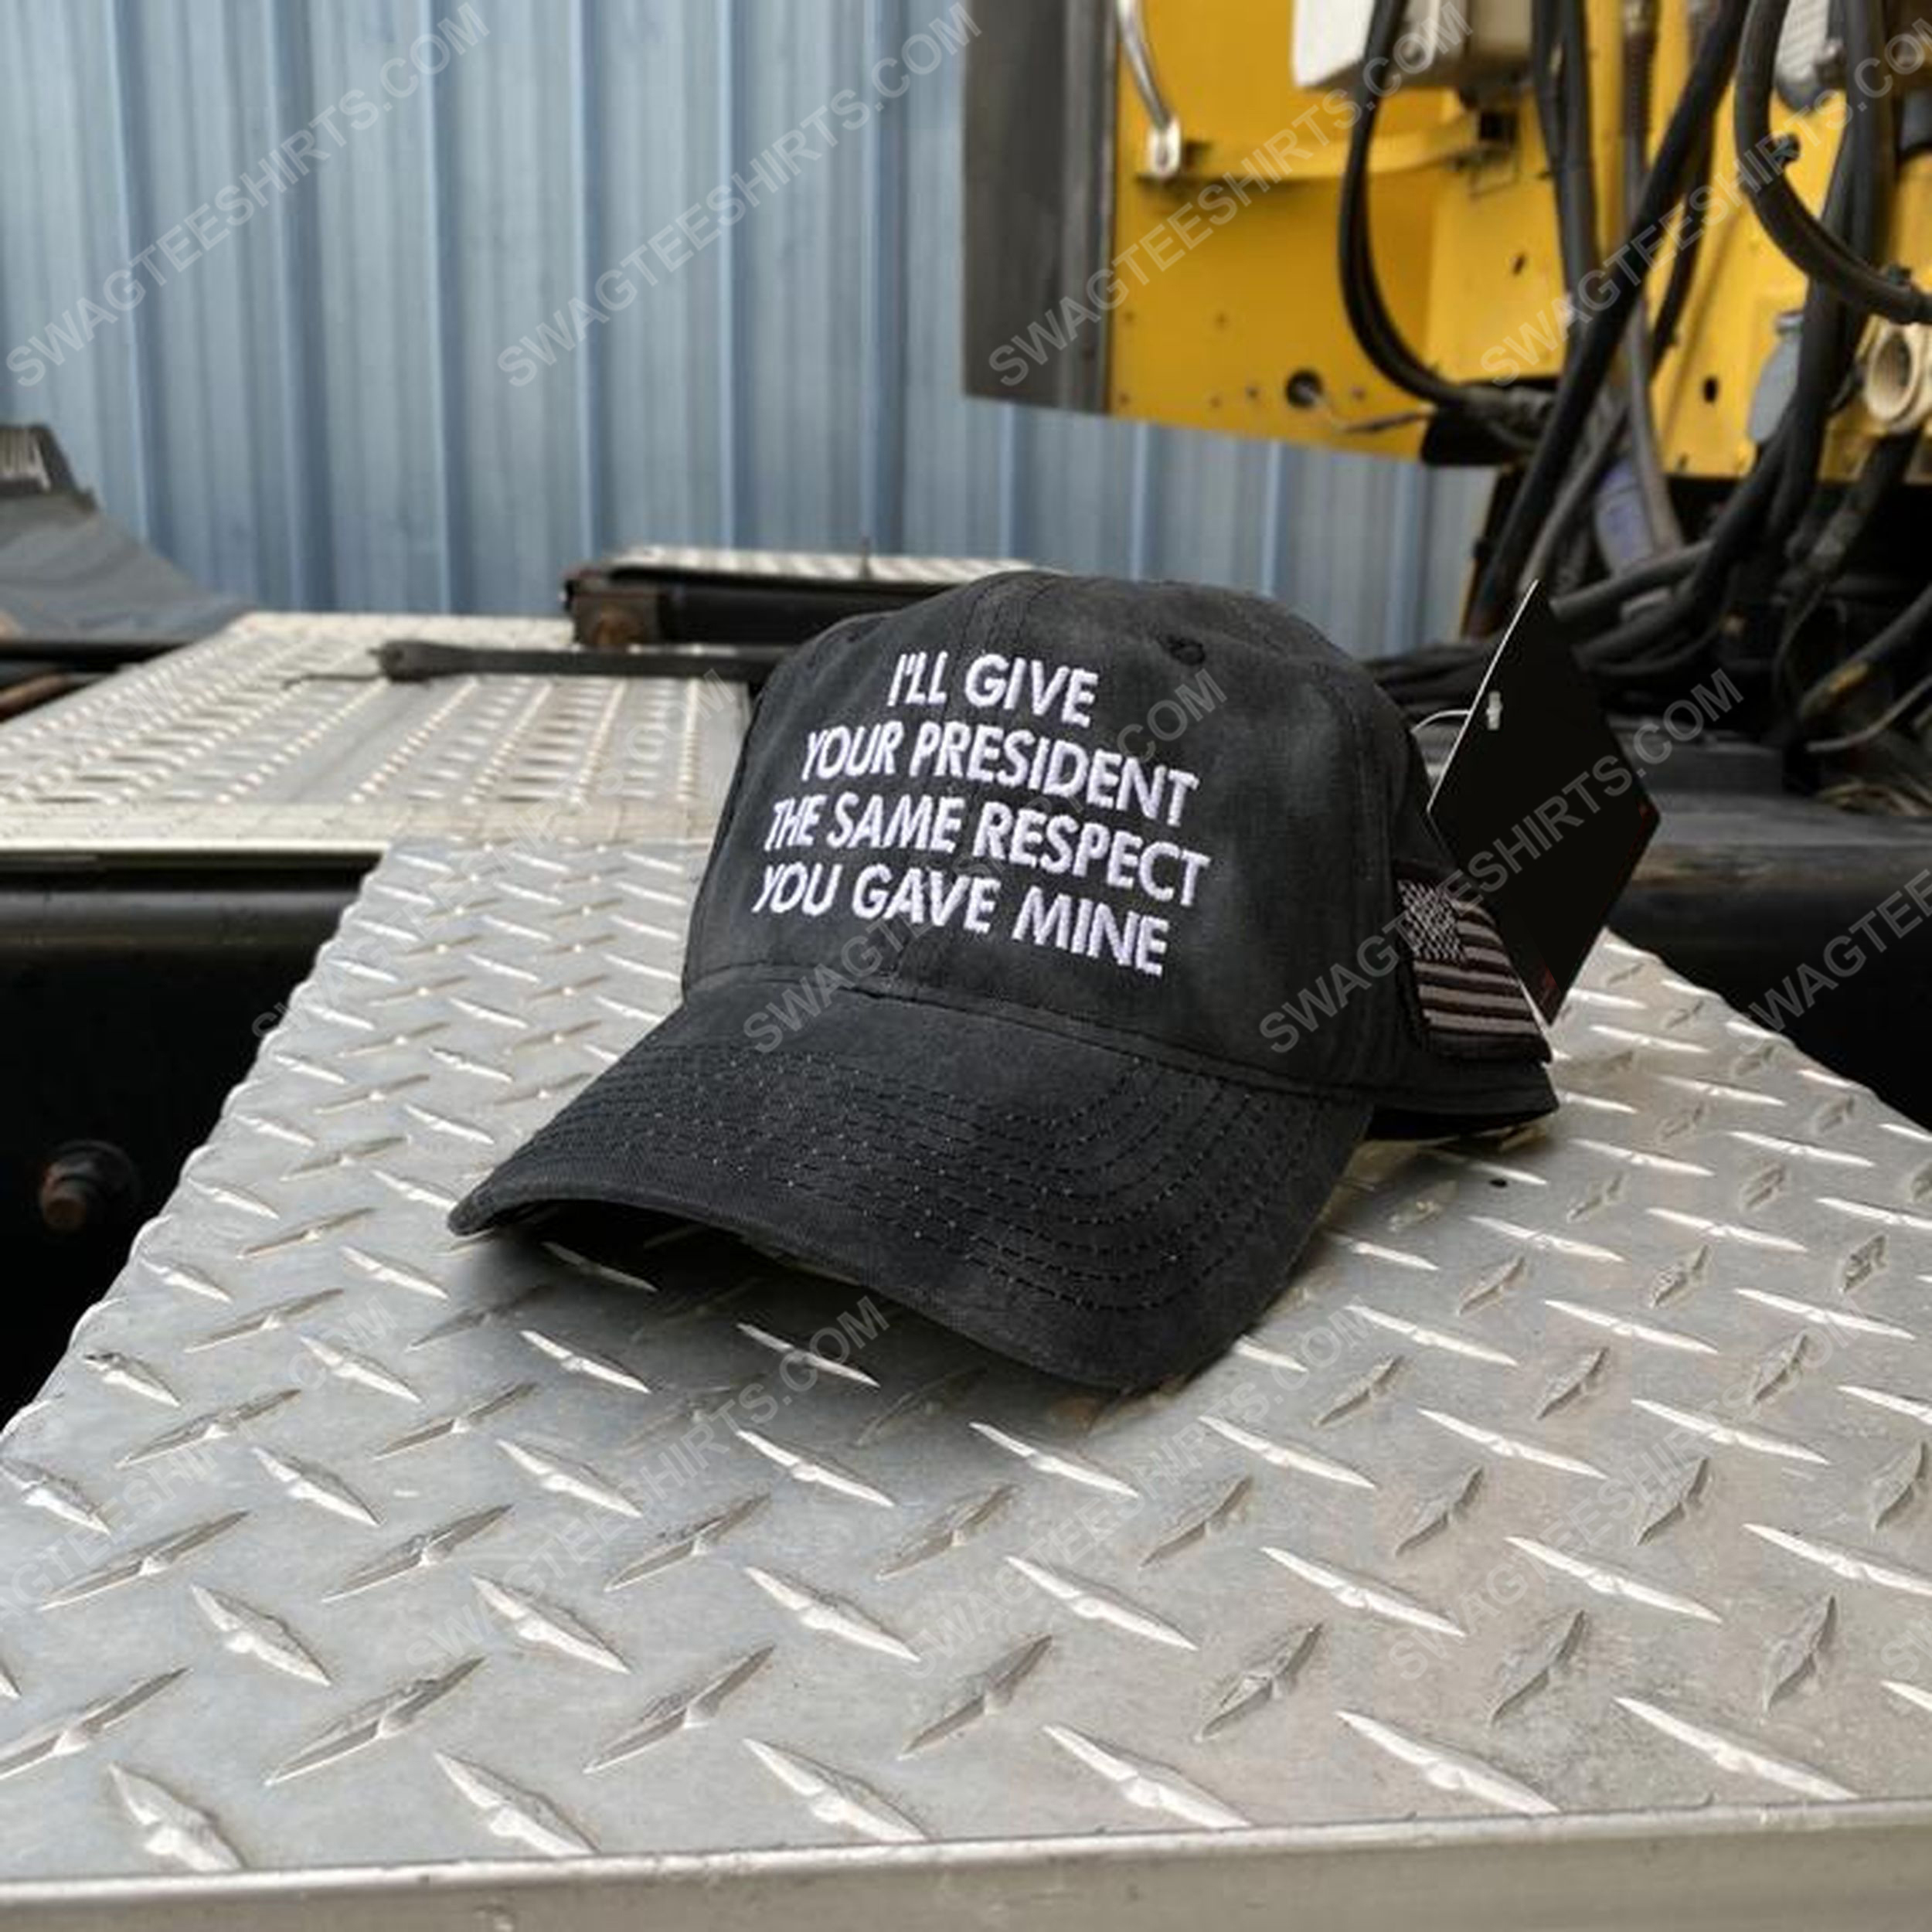 I'll give your president the same respect you gave mine full print classic hat 1 - Copy